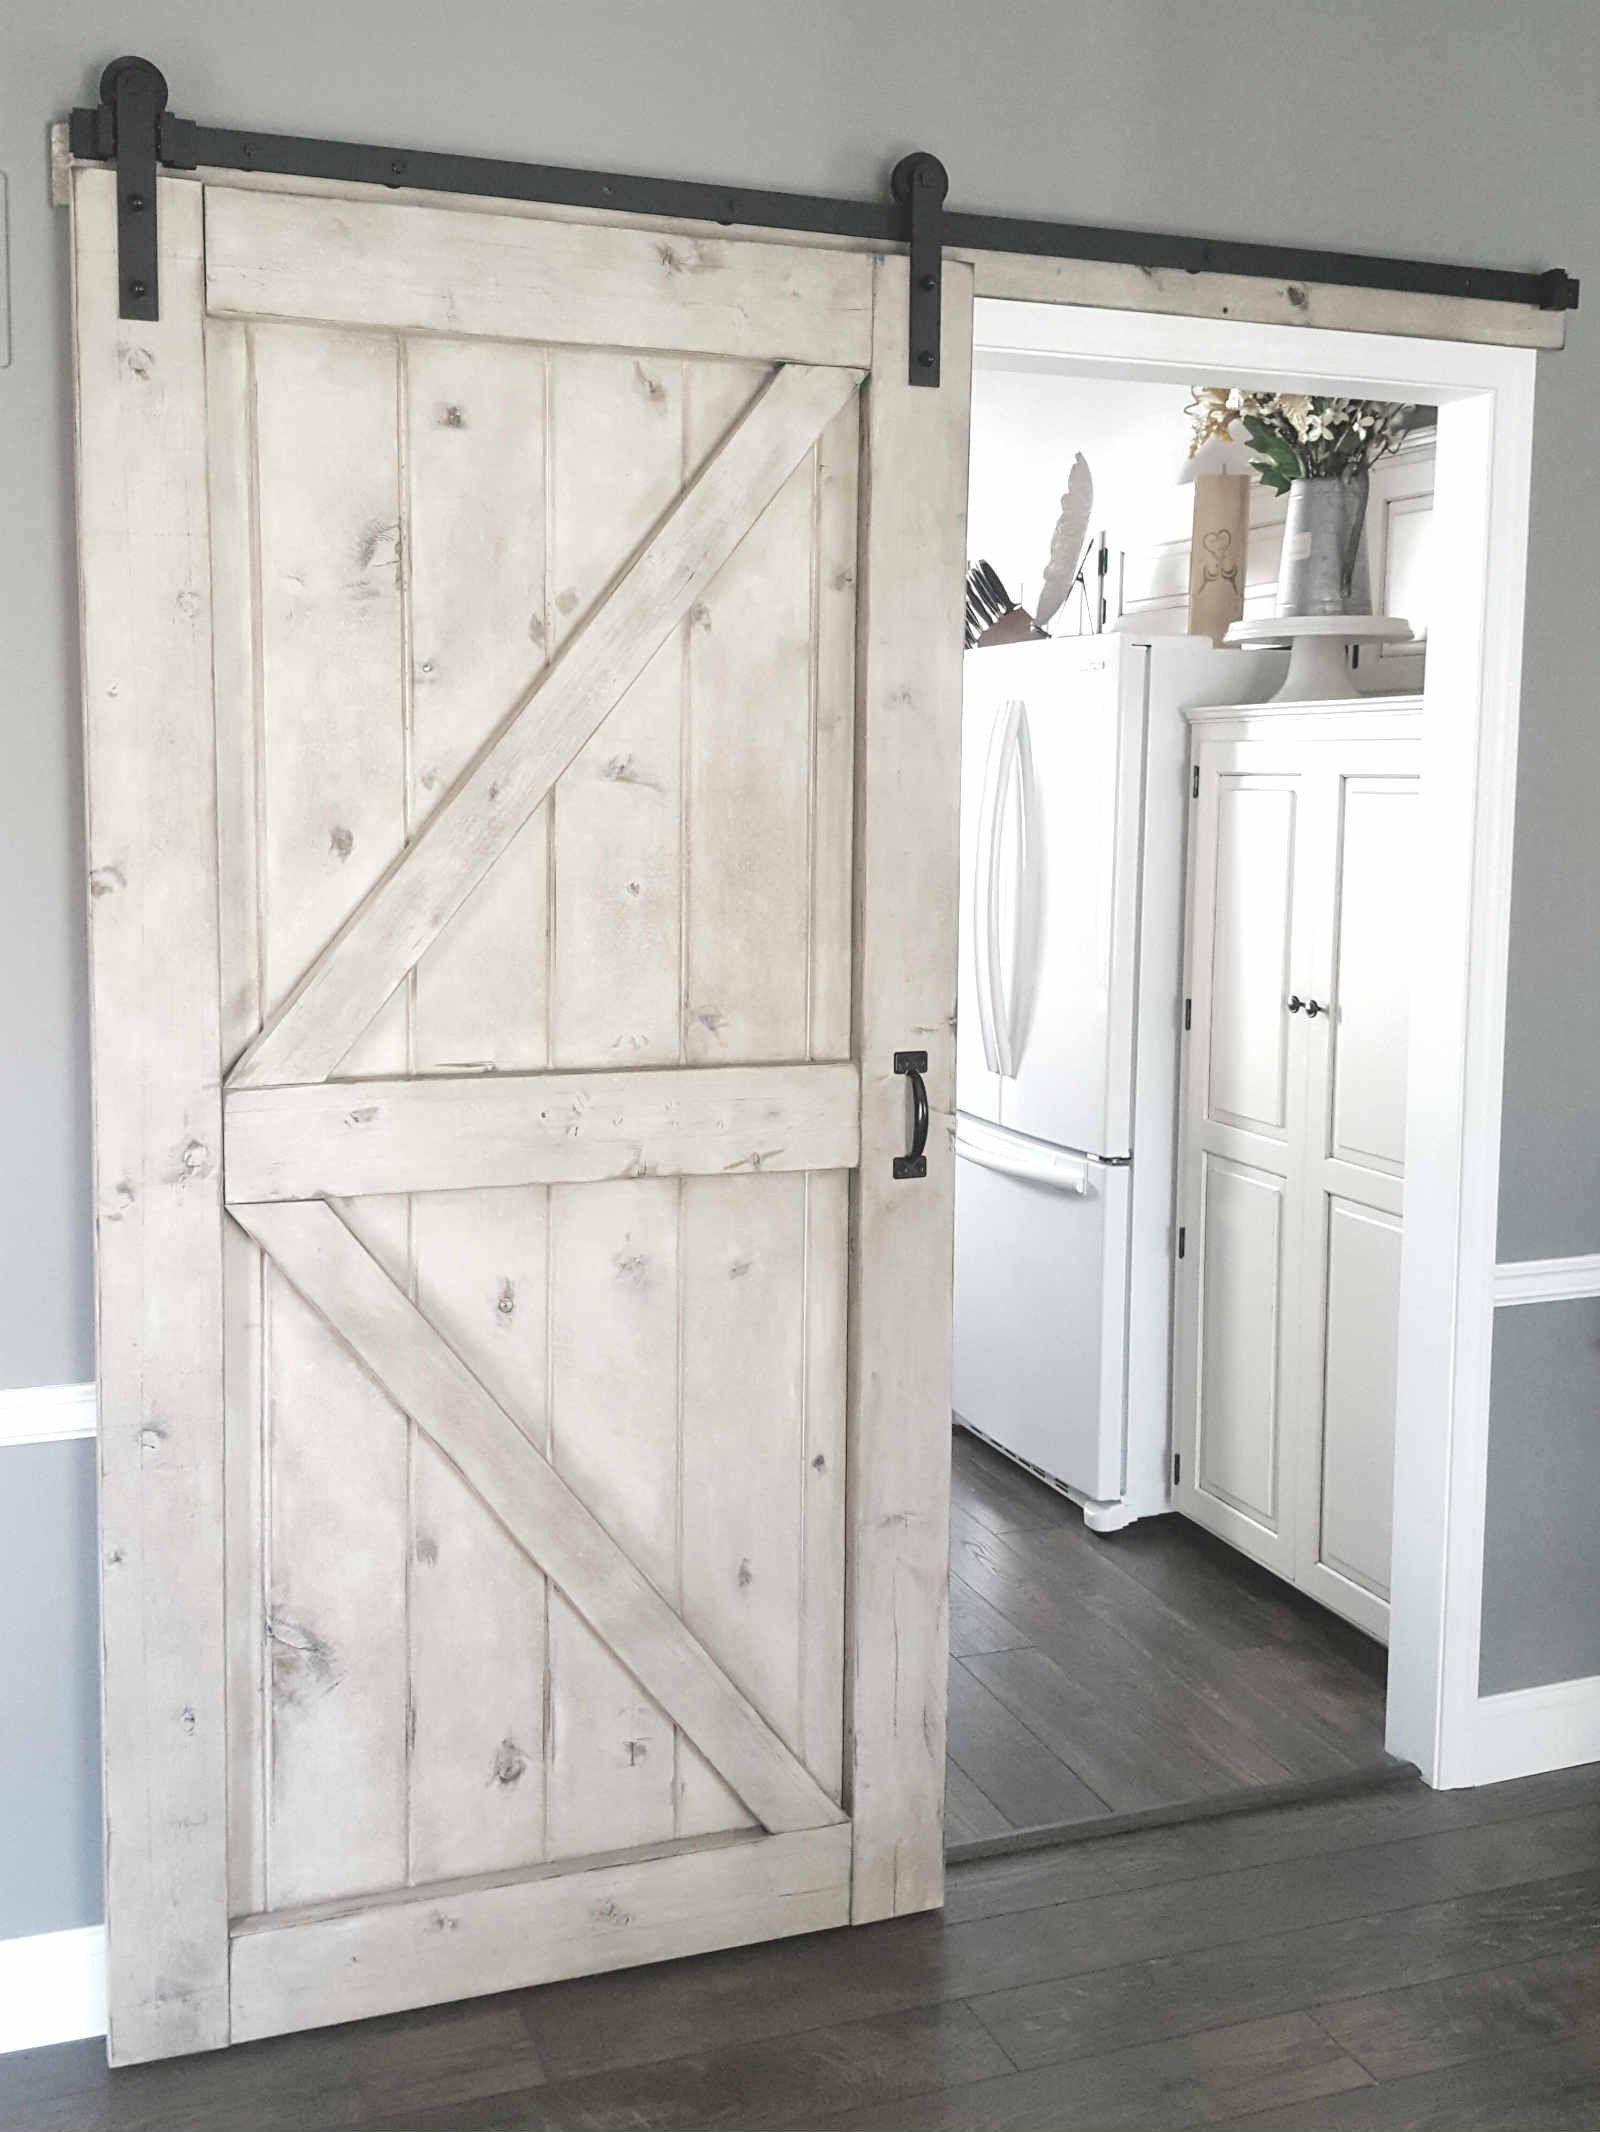 Barn Door Gray Wash Sliding 2 Panel Z Style Walston Door Company Diy Sliding Barn Door Barn Door Designs Home Door Design